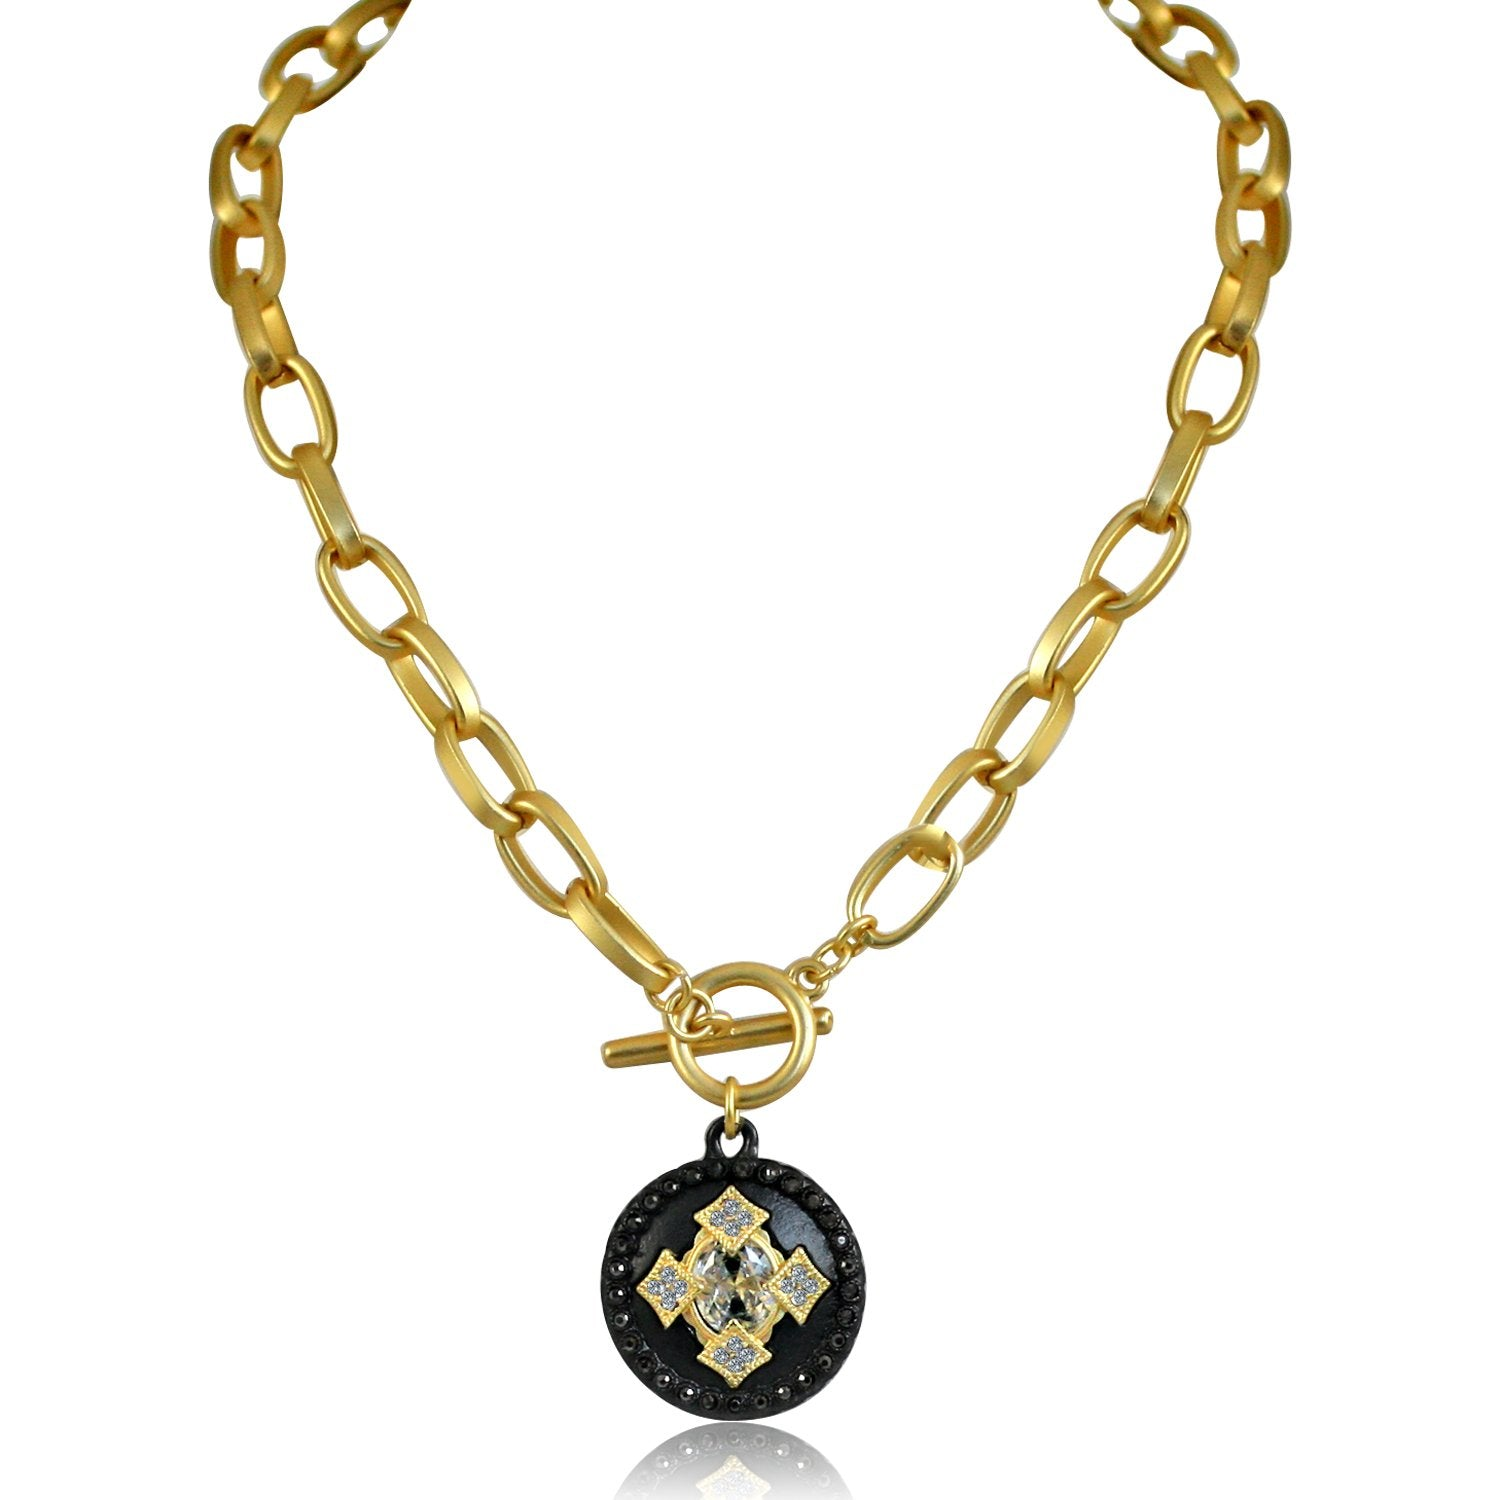 Round Black and Gold Pendant Paved with Black Diamond and Cubic Zirconia w/ Big Center Stone Elongated Chain Link Toggle Clasp 689N648